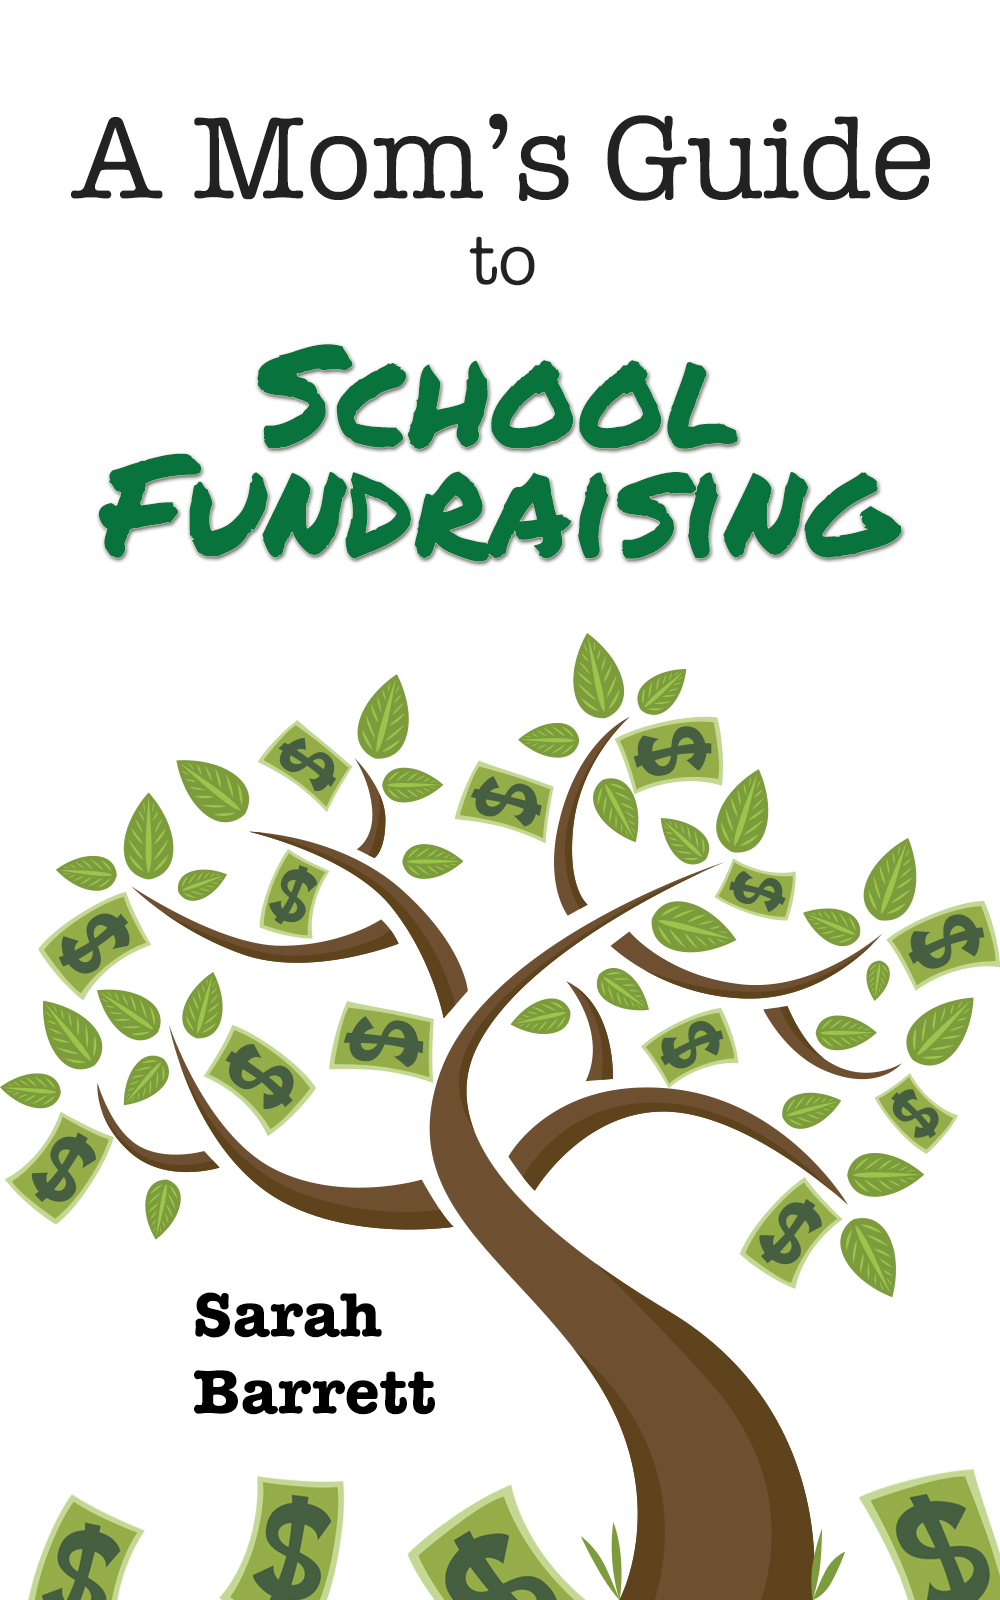 A Moms Guide to School Fundraising